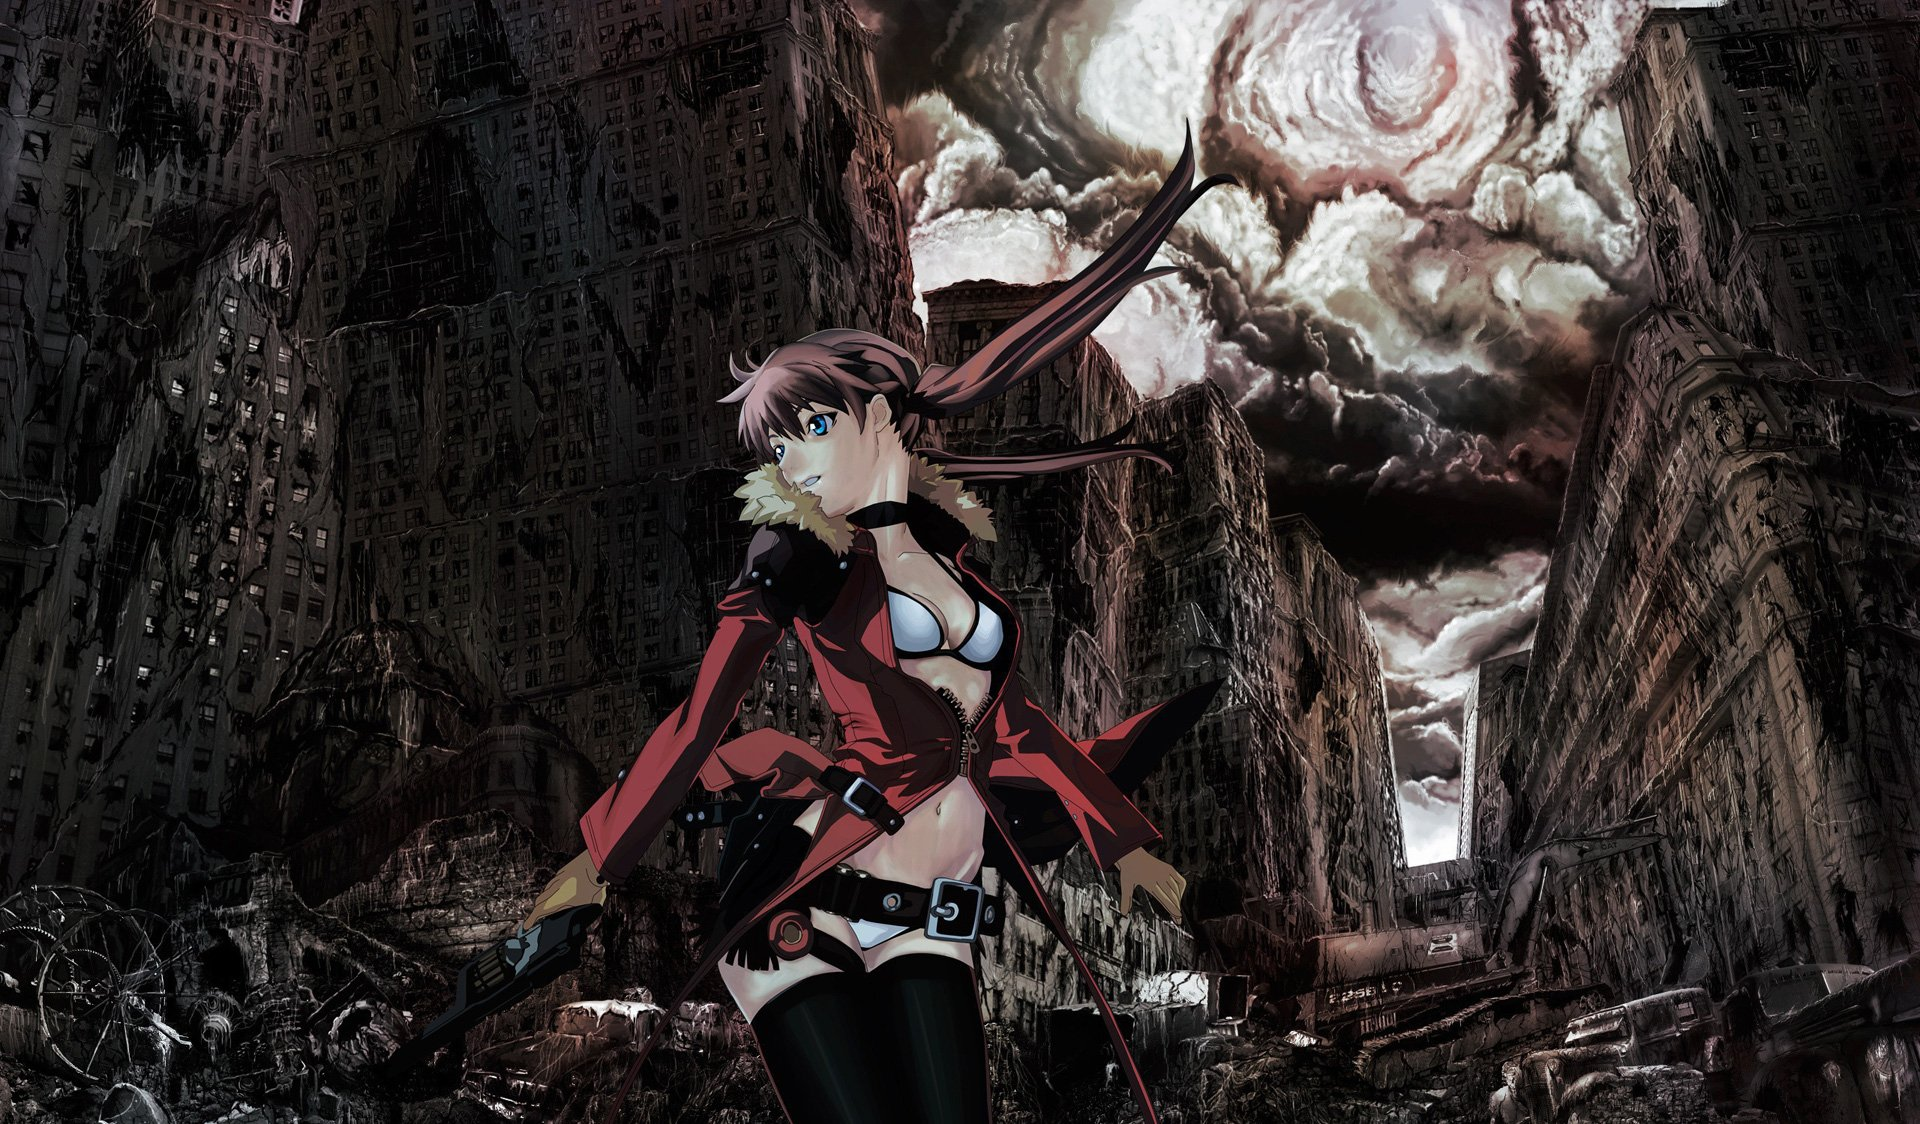 It is headed by dr. Apocalypse artwork anime girls wallpaper | 1920x1124 | 256951 | WallpaperUP